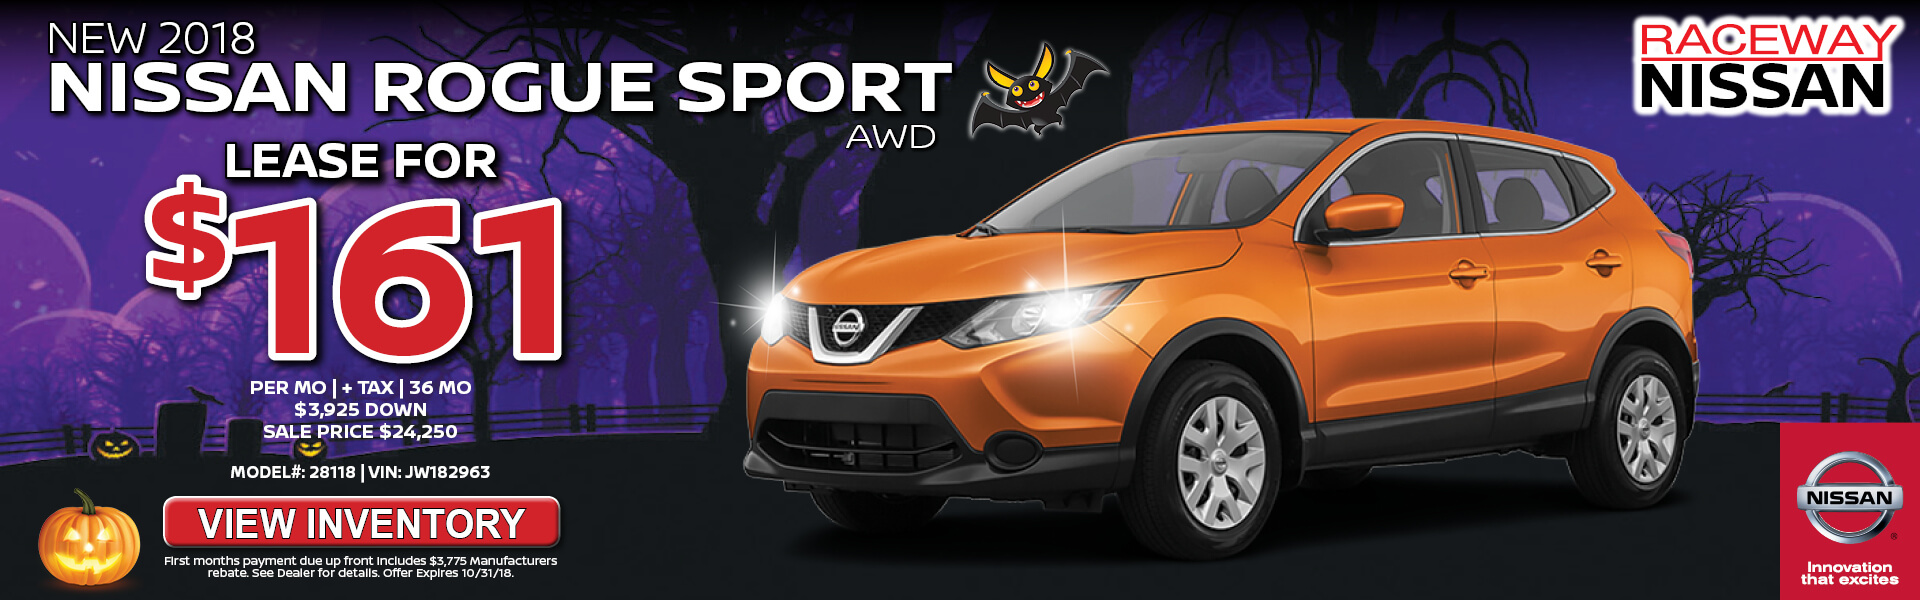 Nissan Rogue Sport $161 Lease